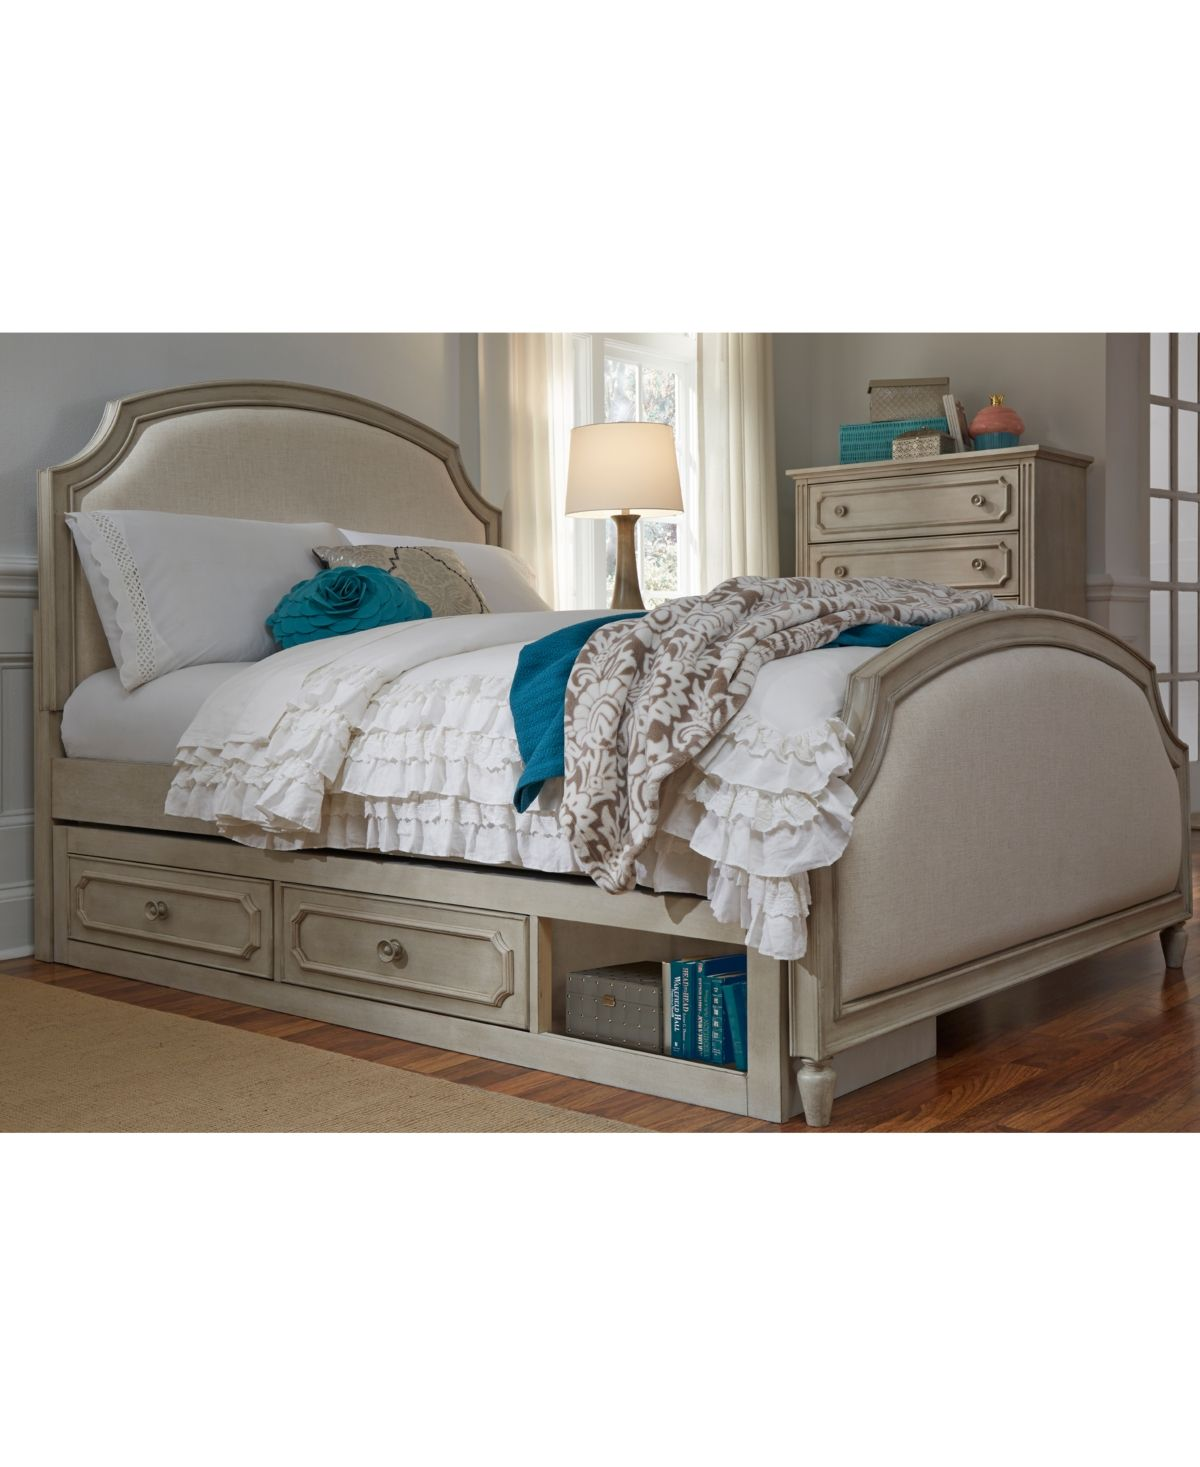 Emma Kids Bedroom Furniture Twin Upholstered Panel Bed With Under